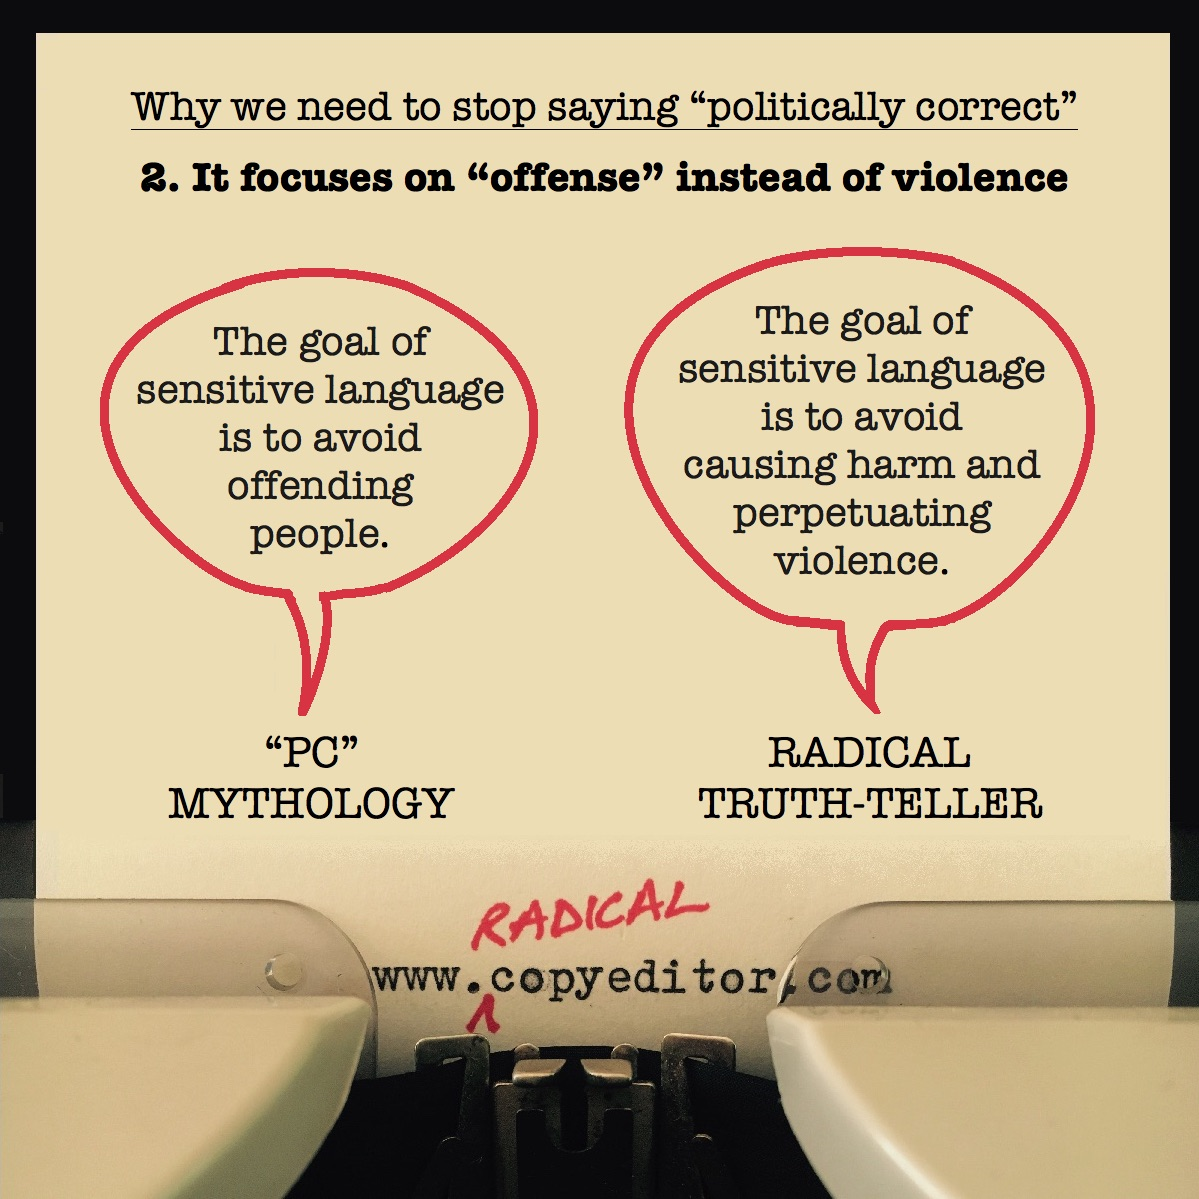 """Politically correct"" focuses on ""offense"" instead of violence. Full description of pic below."